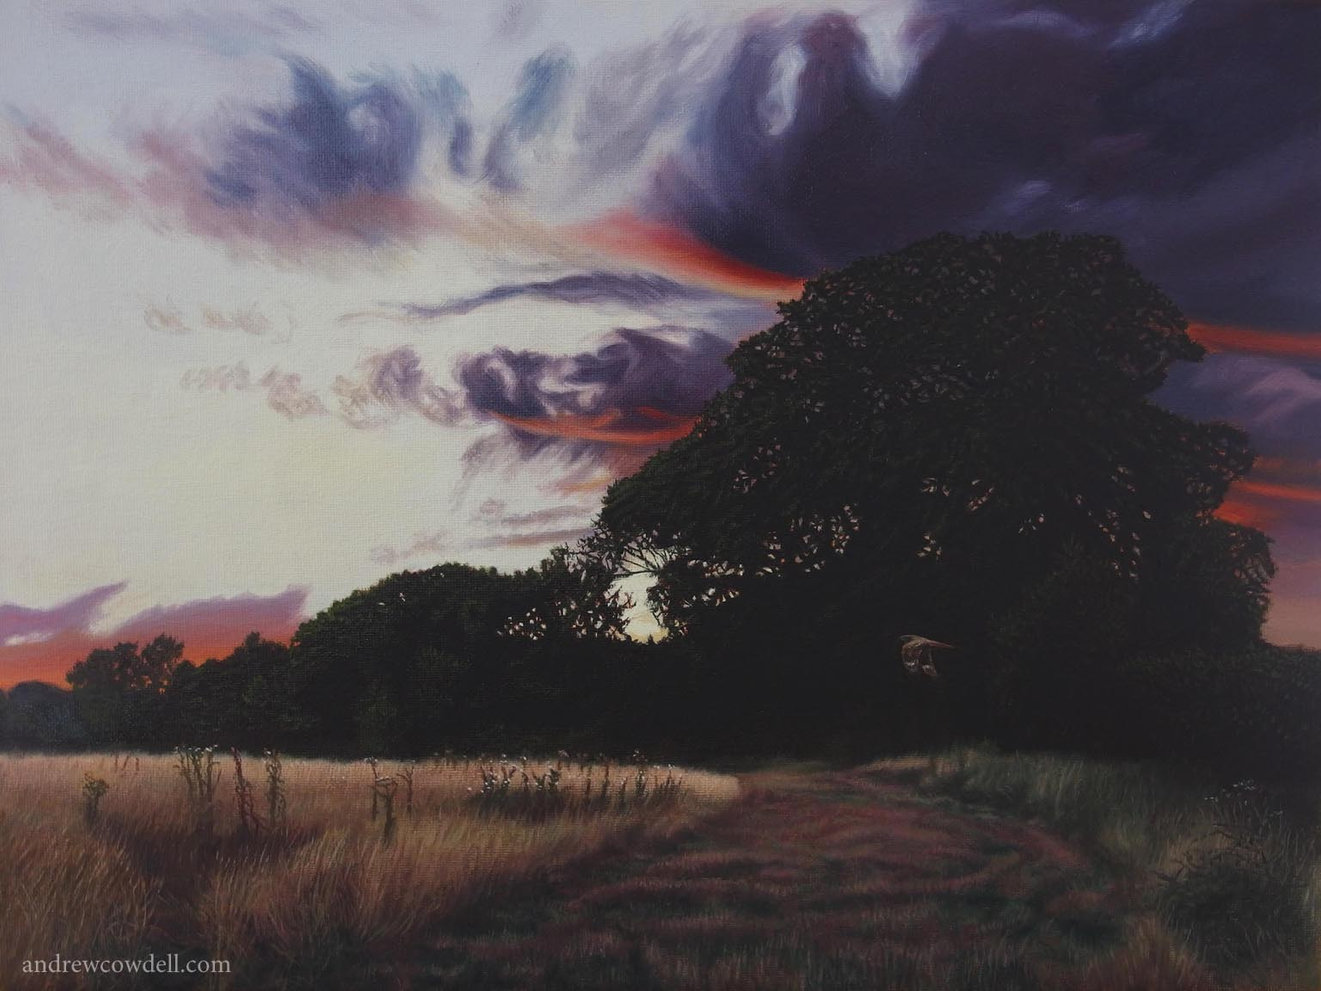 Dark Paintings by Andrew Cowdell. Landscape after sunset with nightjar bird at Hermitage, West Berkshire.